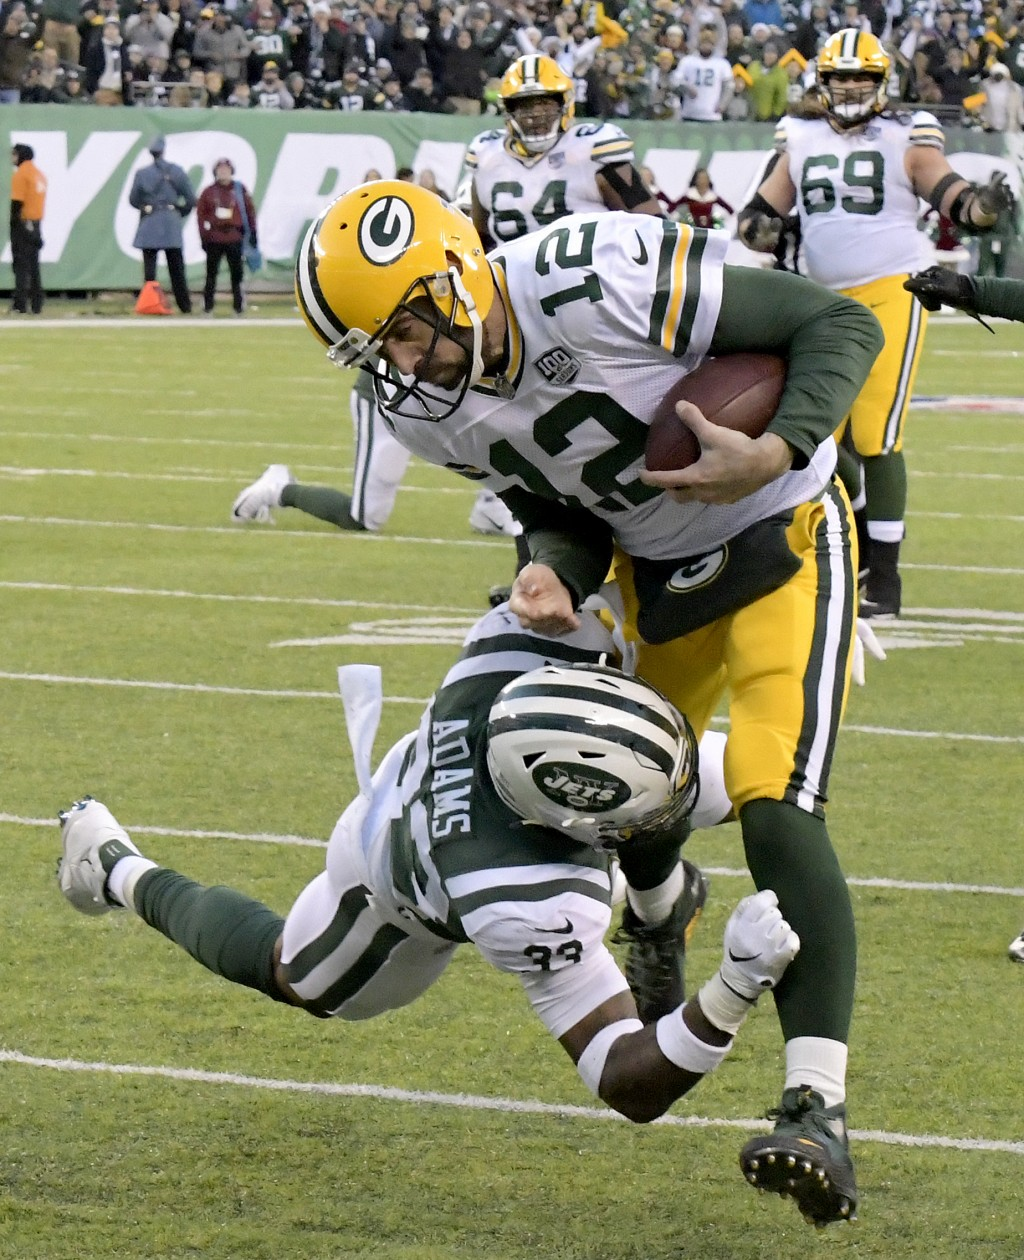 Green Bay Packers quarterback Aaron Rodgers (12) is tackled by New York Jets strong safety Jamal Adams (33) during the second half of an NFL football